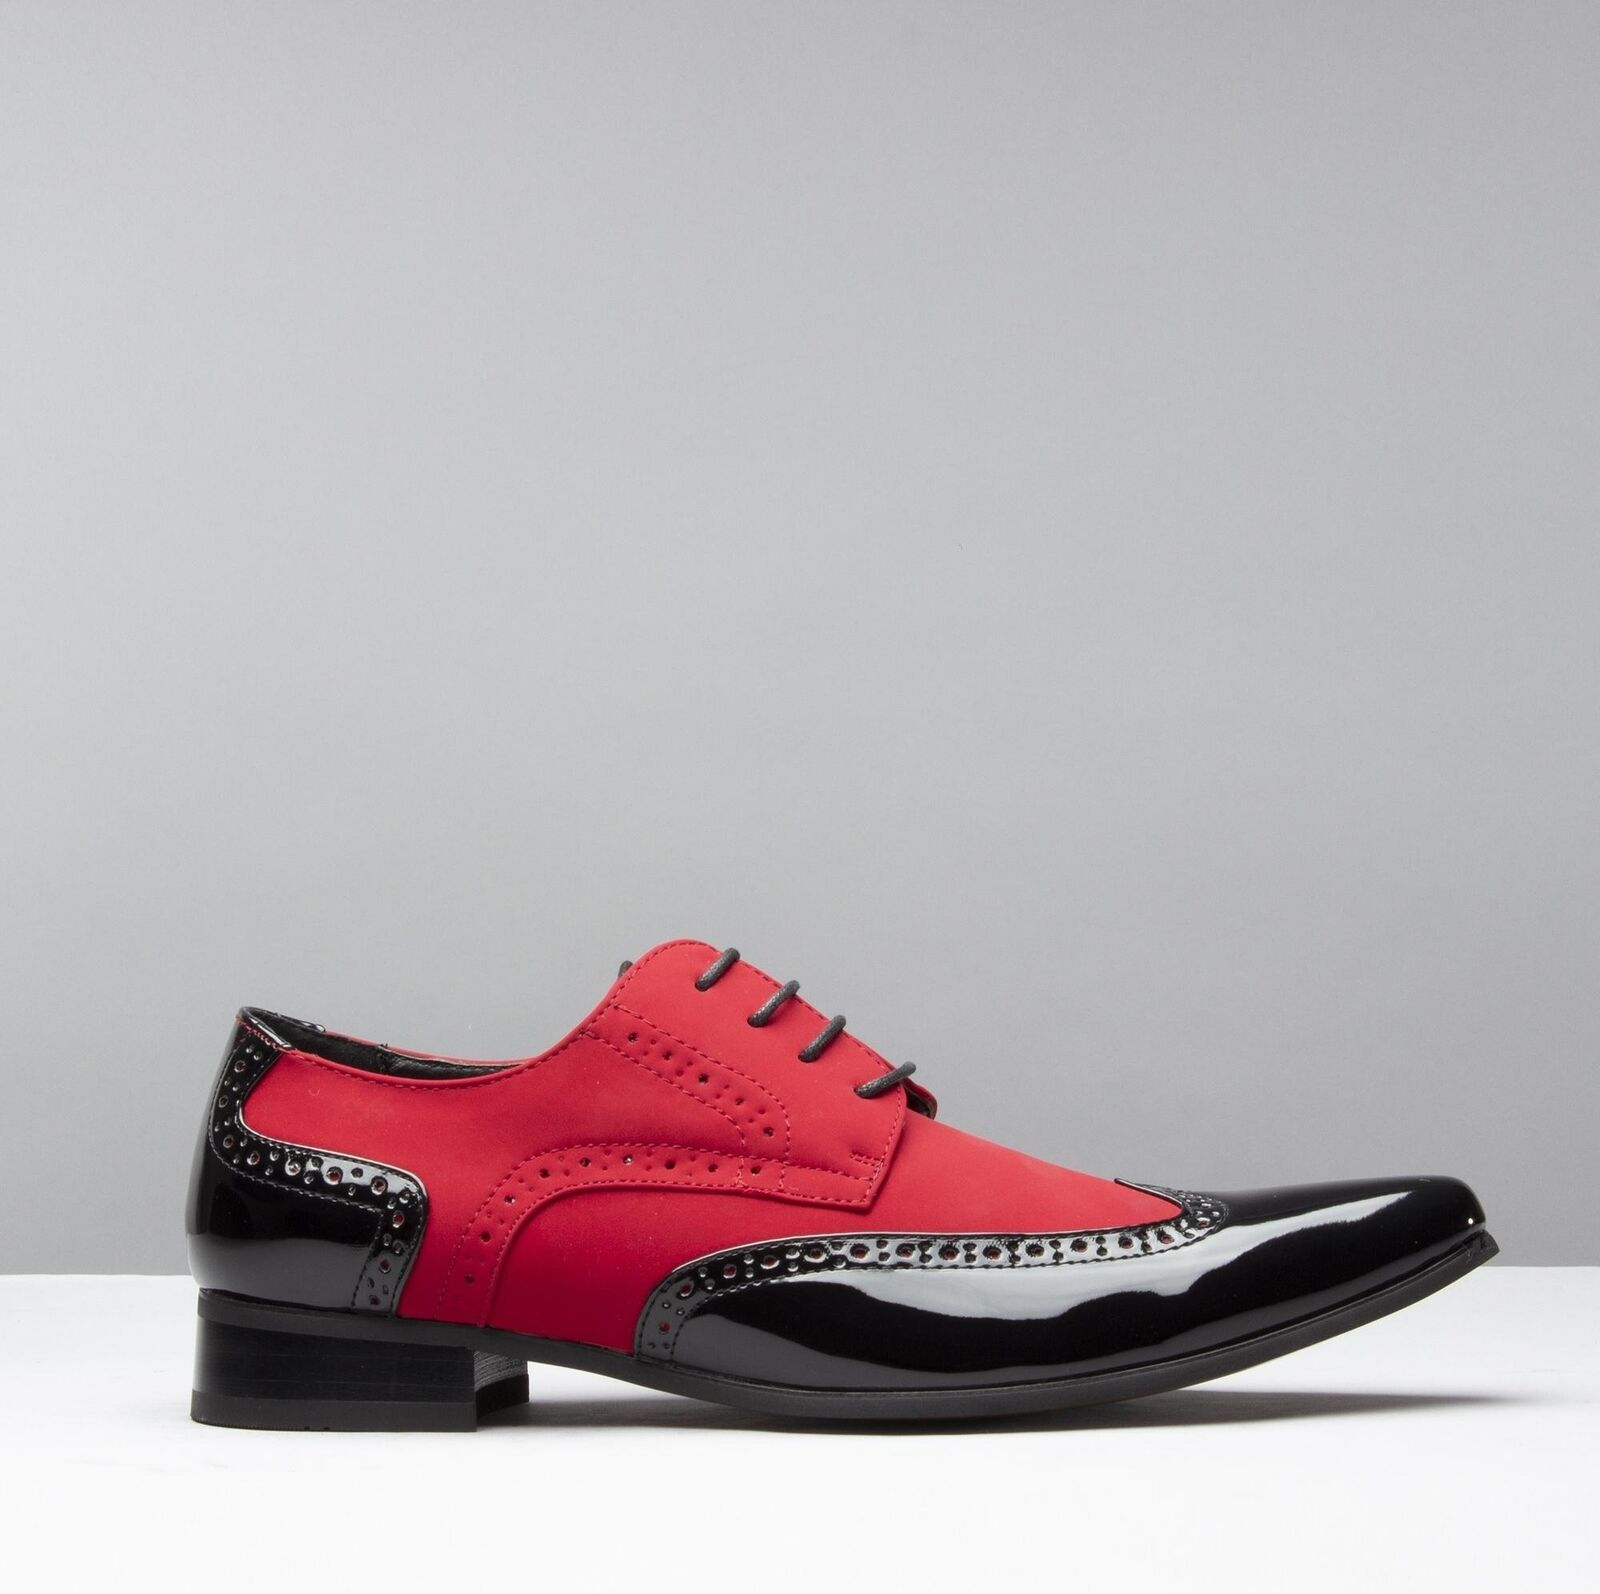 Mister Carlo ARTISTA Mens Formal Funky Pointed Faux Suede Patent shoes Black Red